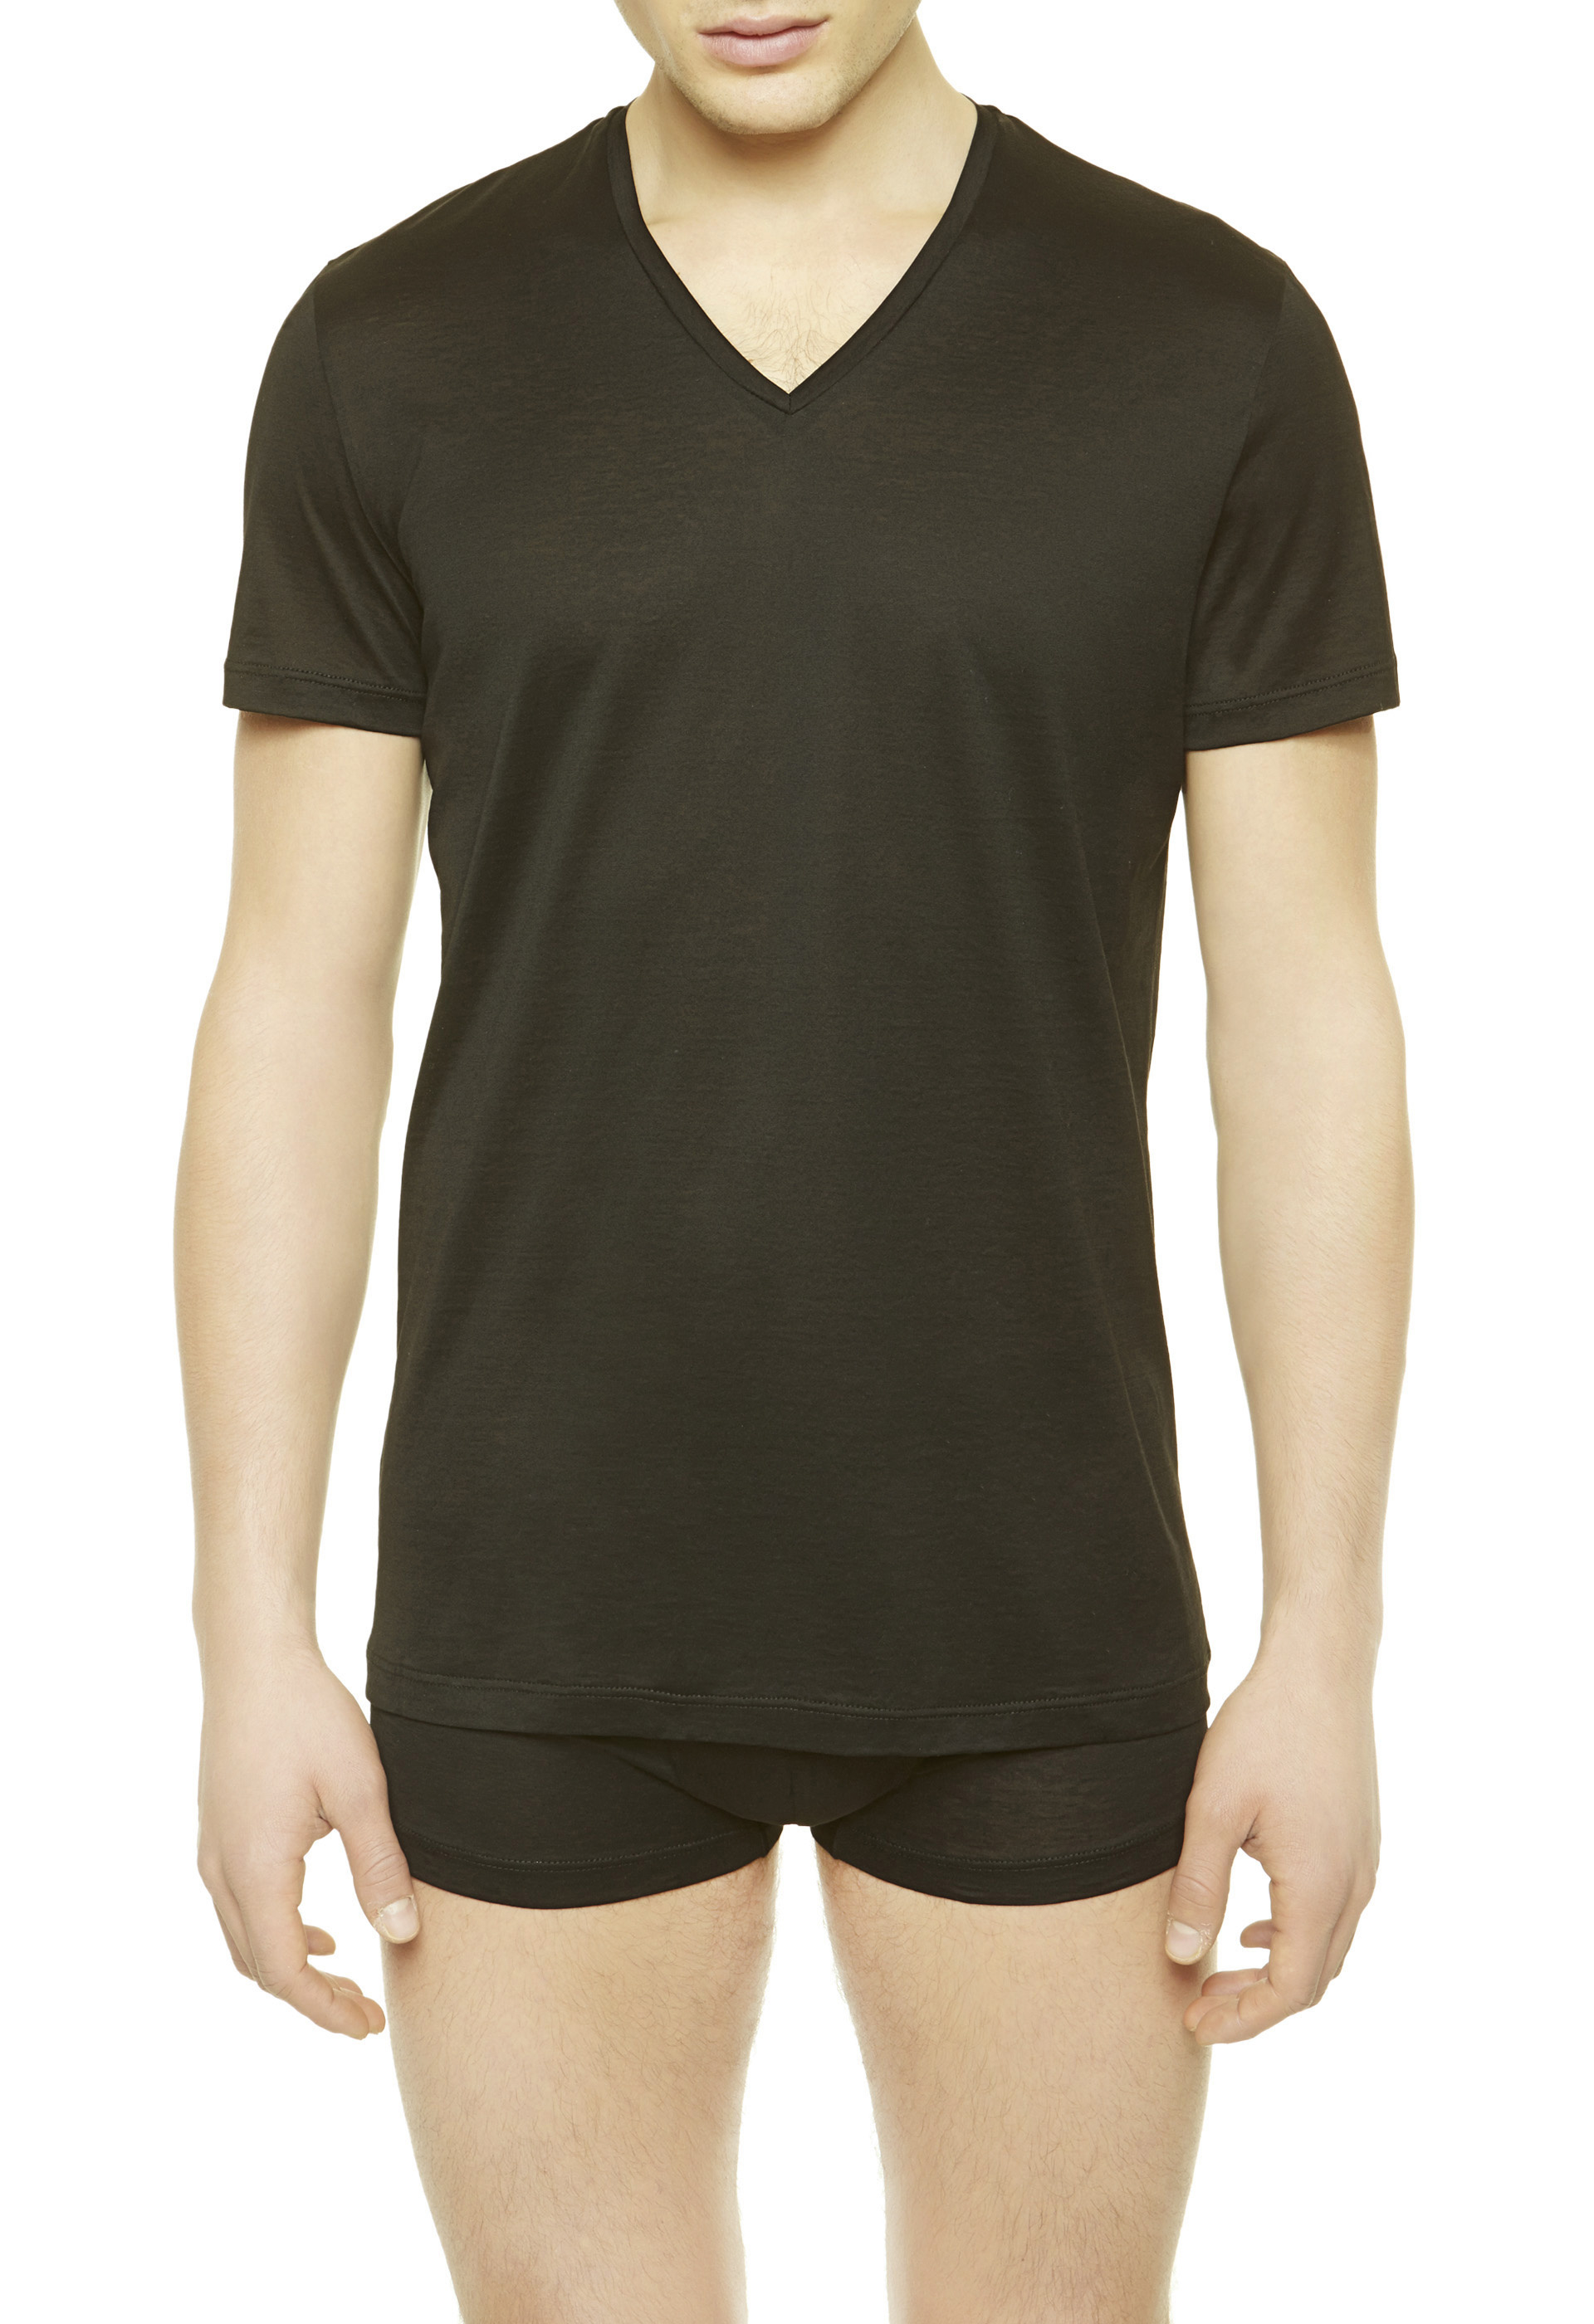 La perla v neck t shirt in black for men lyst V neck black t shirt